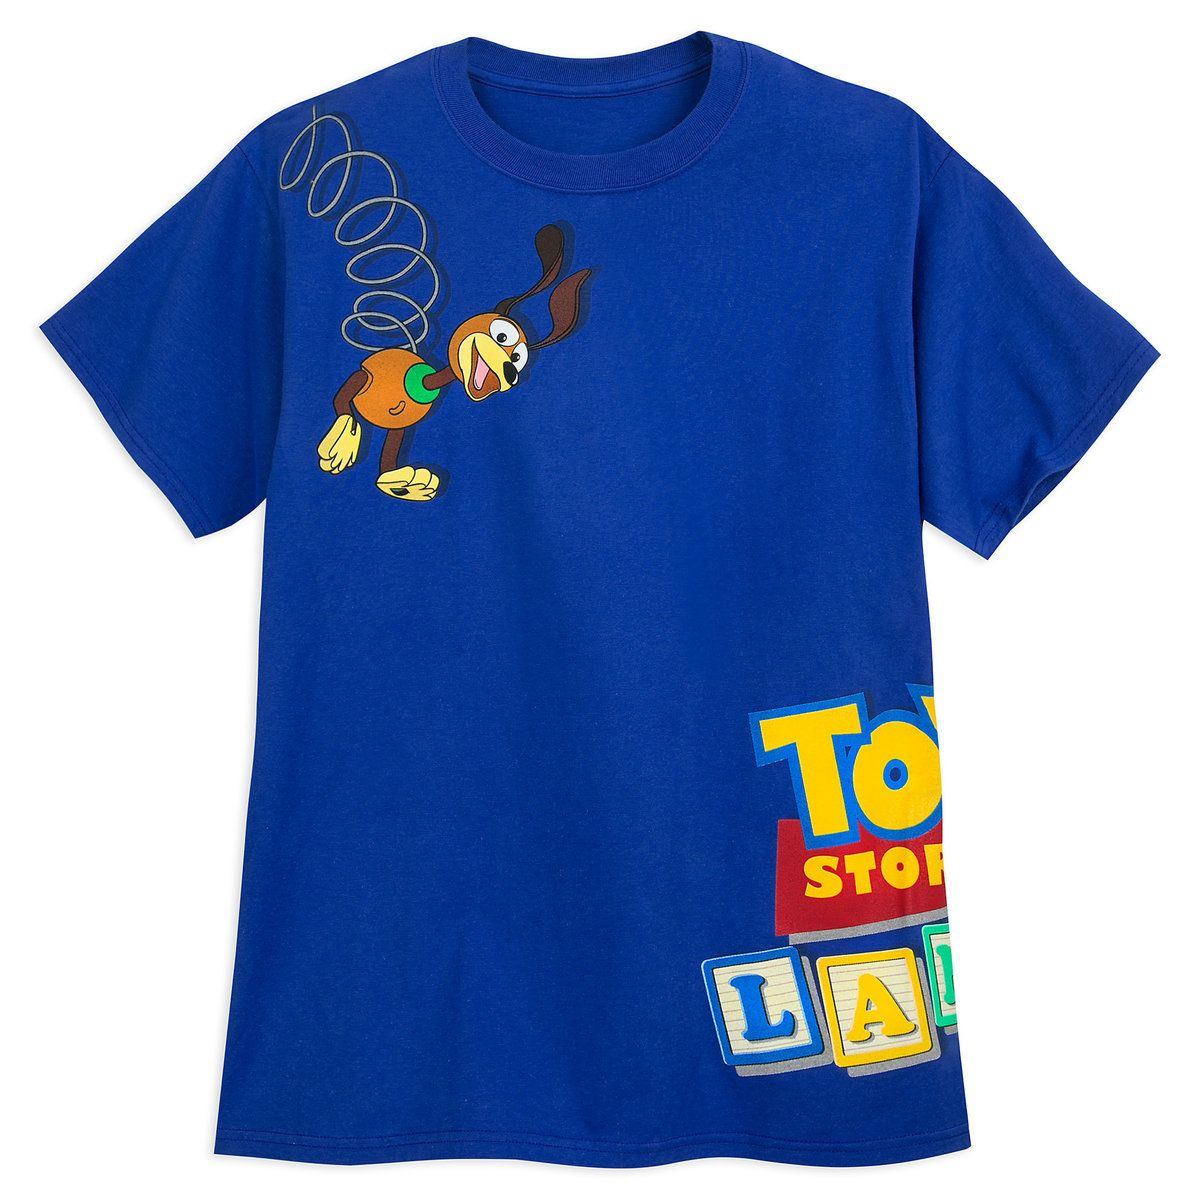 Slinky Dog T-Shirt for Adults - Toy Story Land